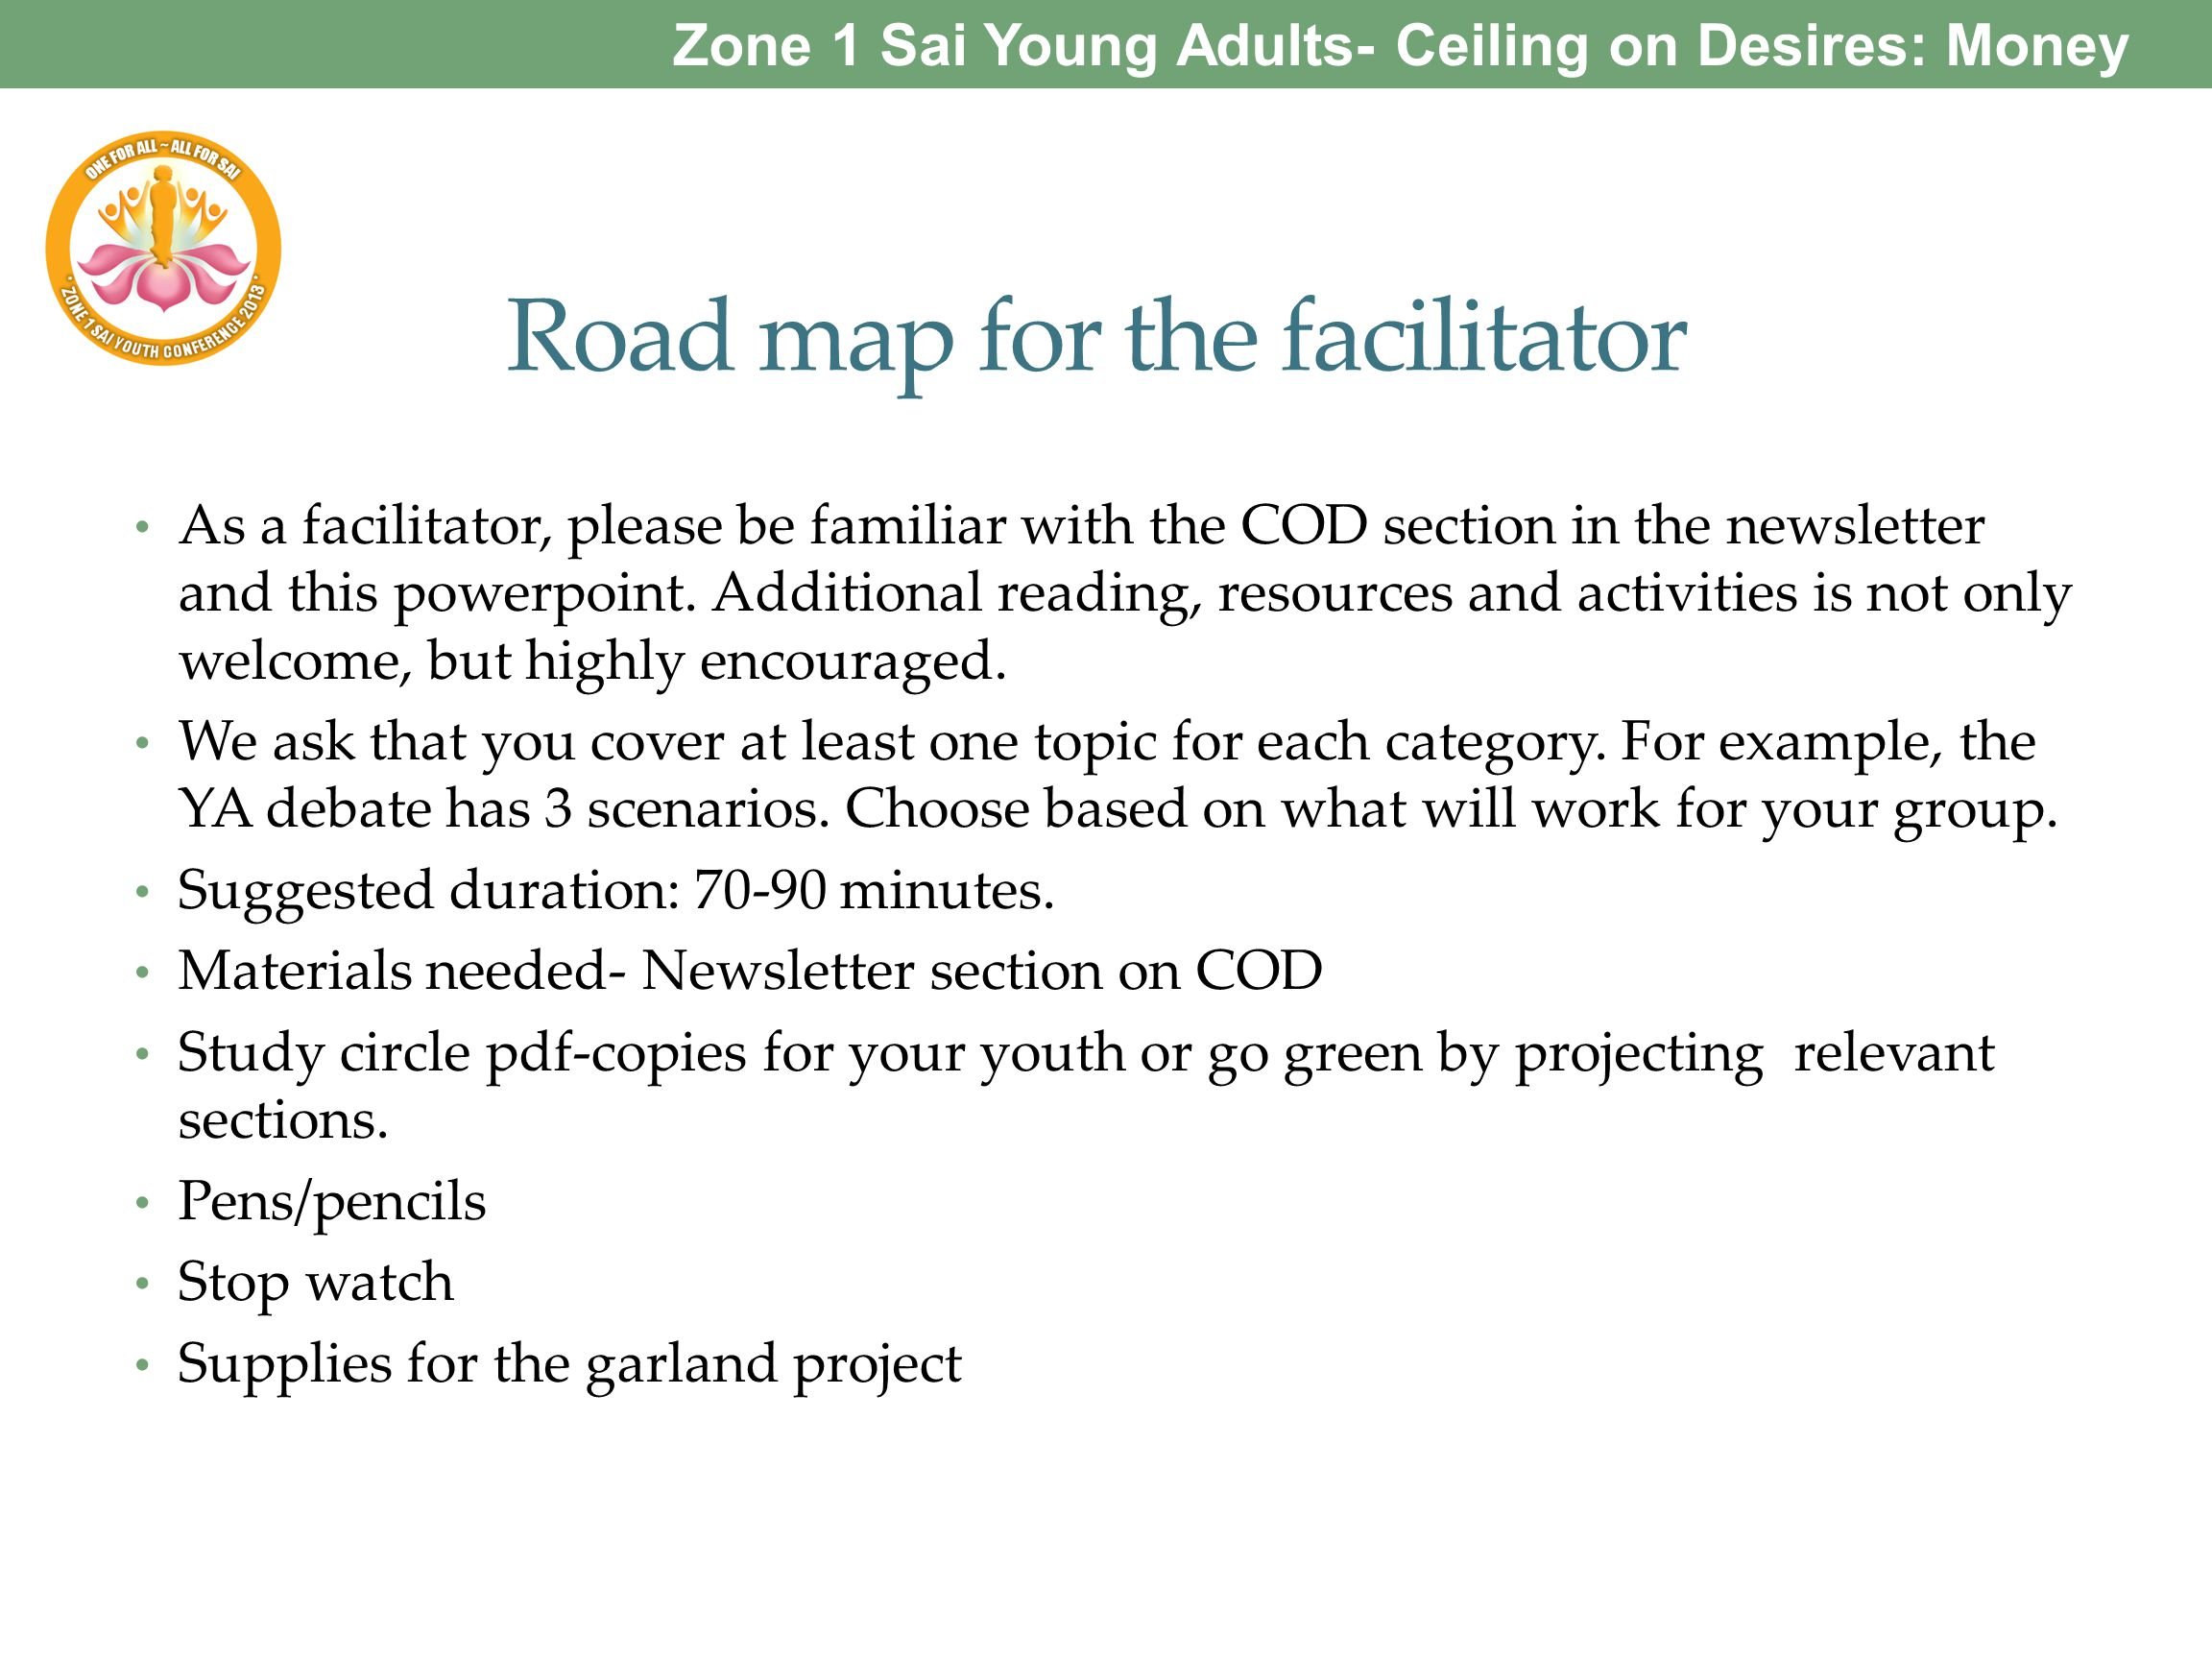 Road map for the facilitator